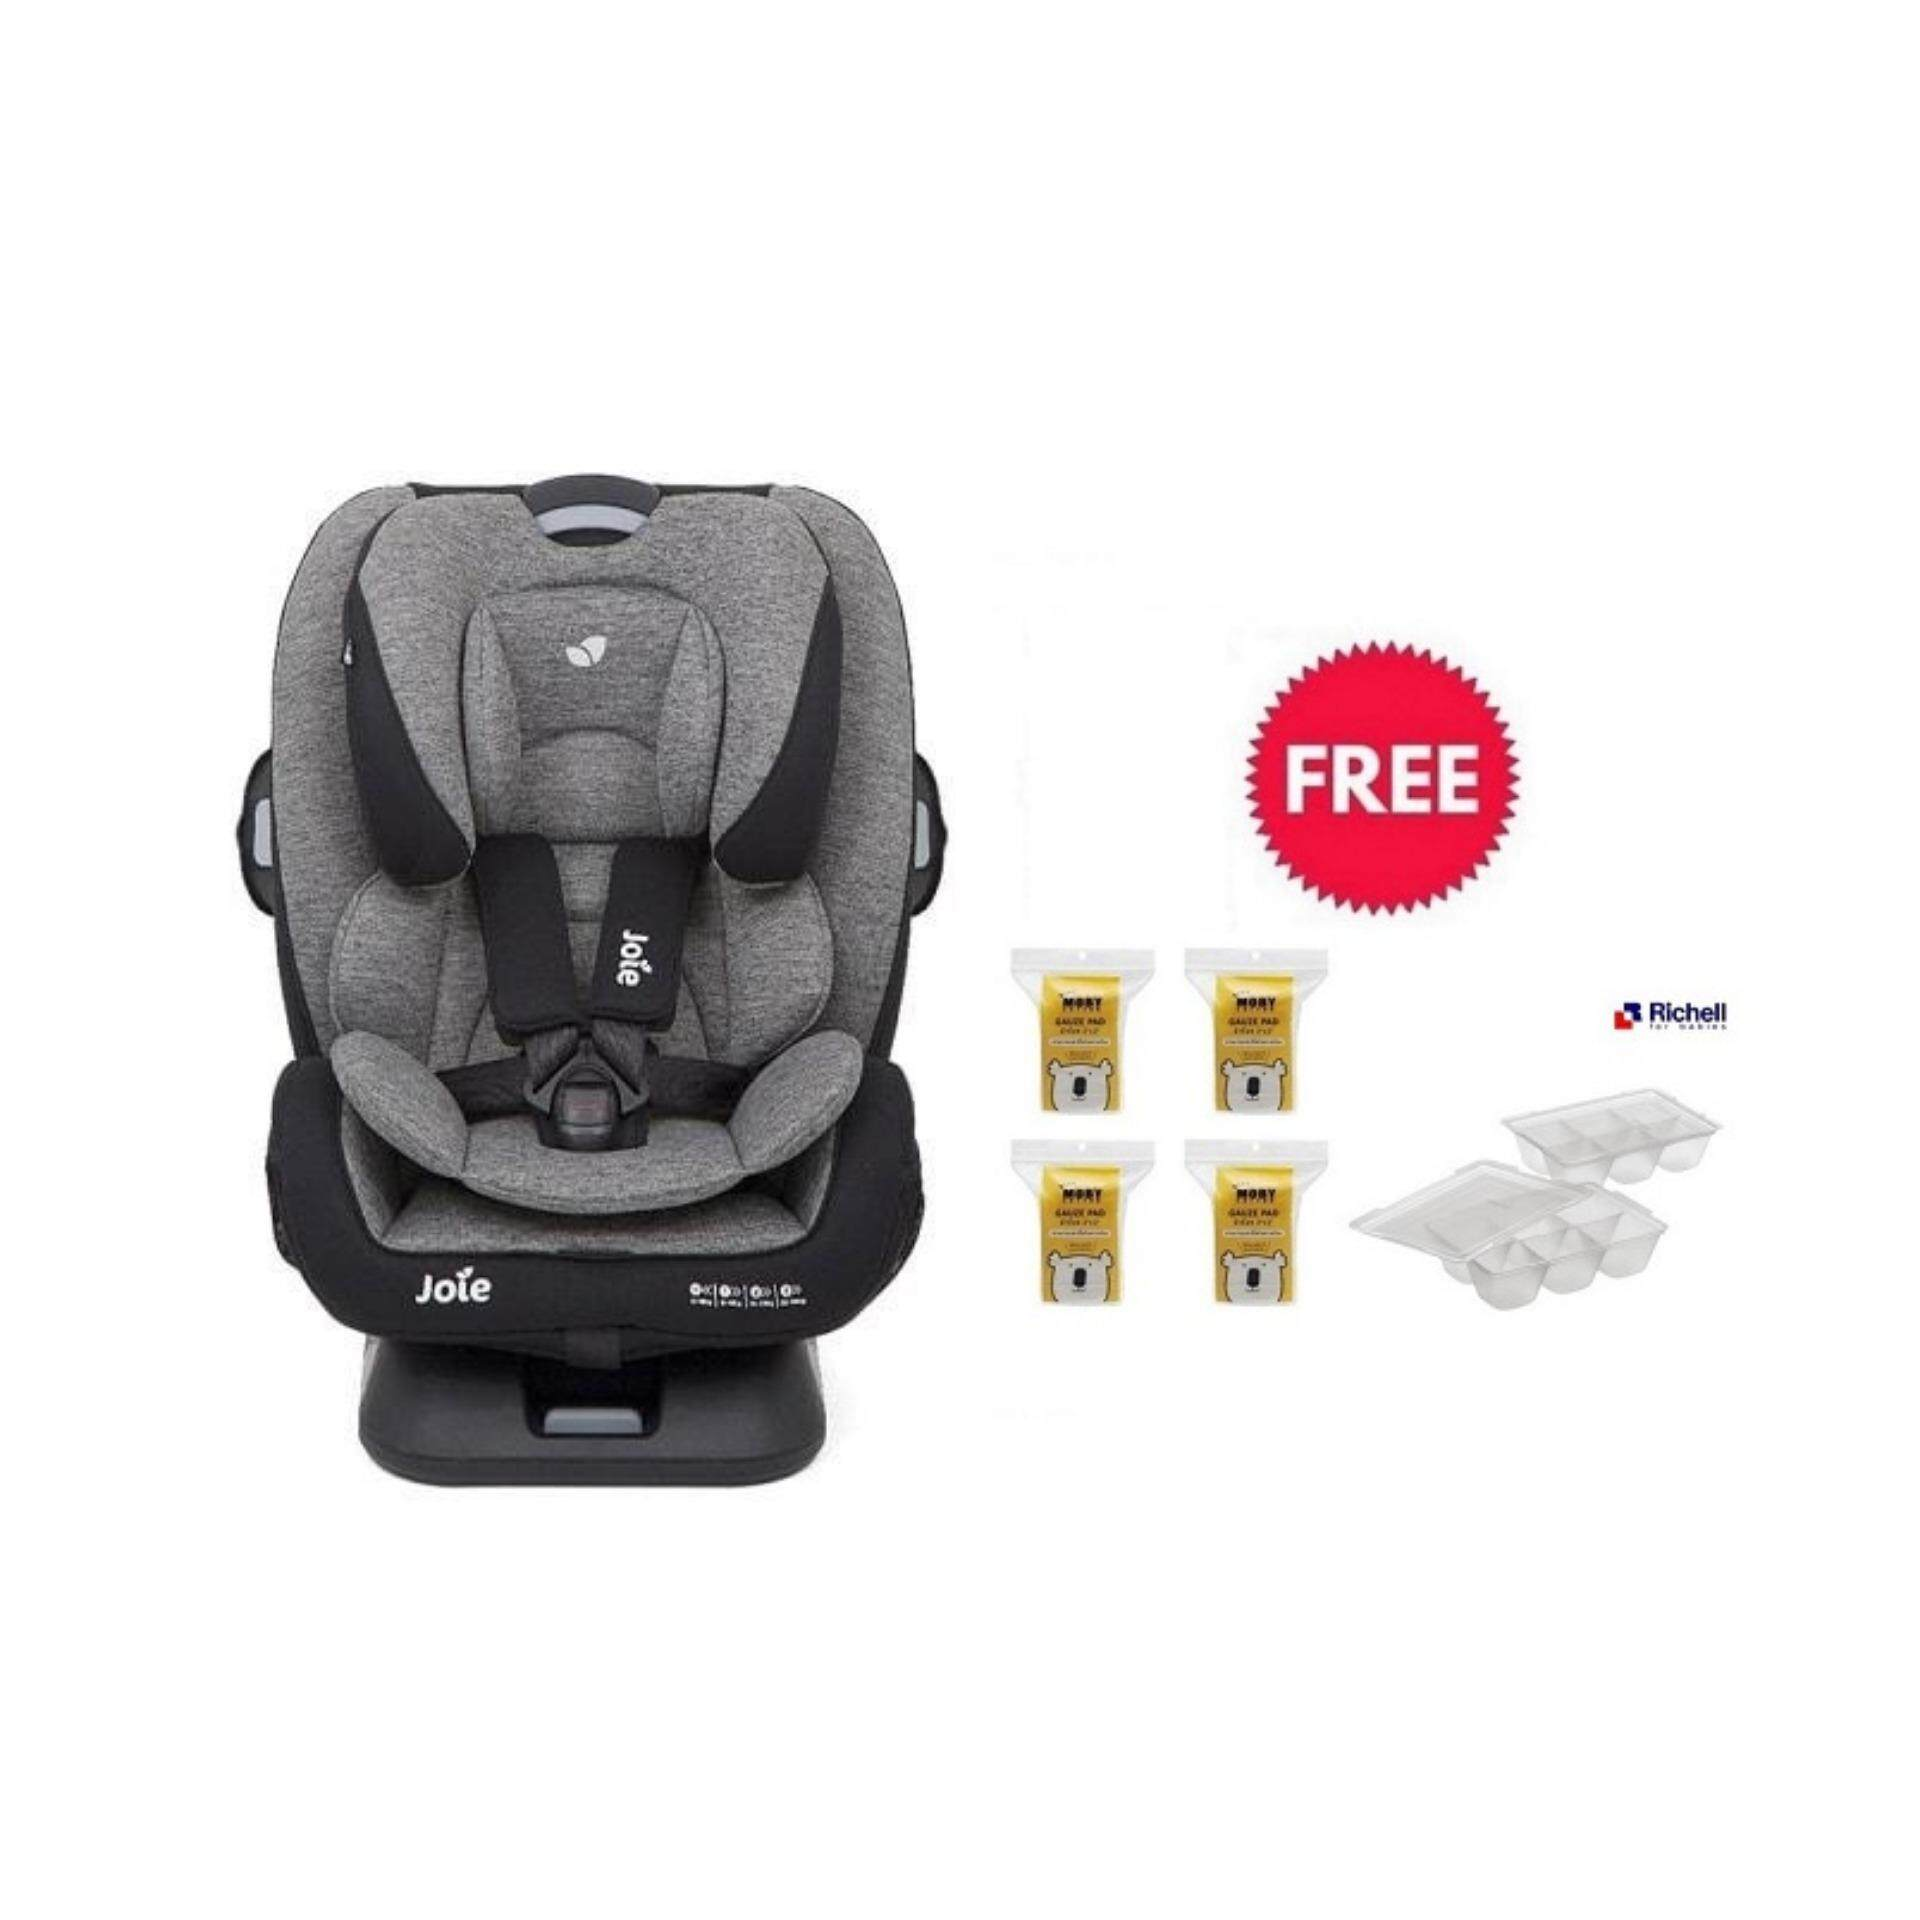 [ผ่อนได้] Joie Car Seat Every Stage FX TTB / 100% แท้ + Free (Baby Moby Gauze x 4) & Richell Food Maker Tray